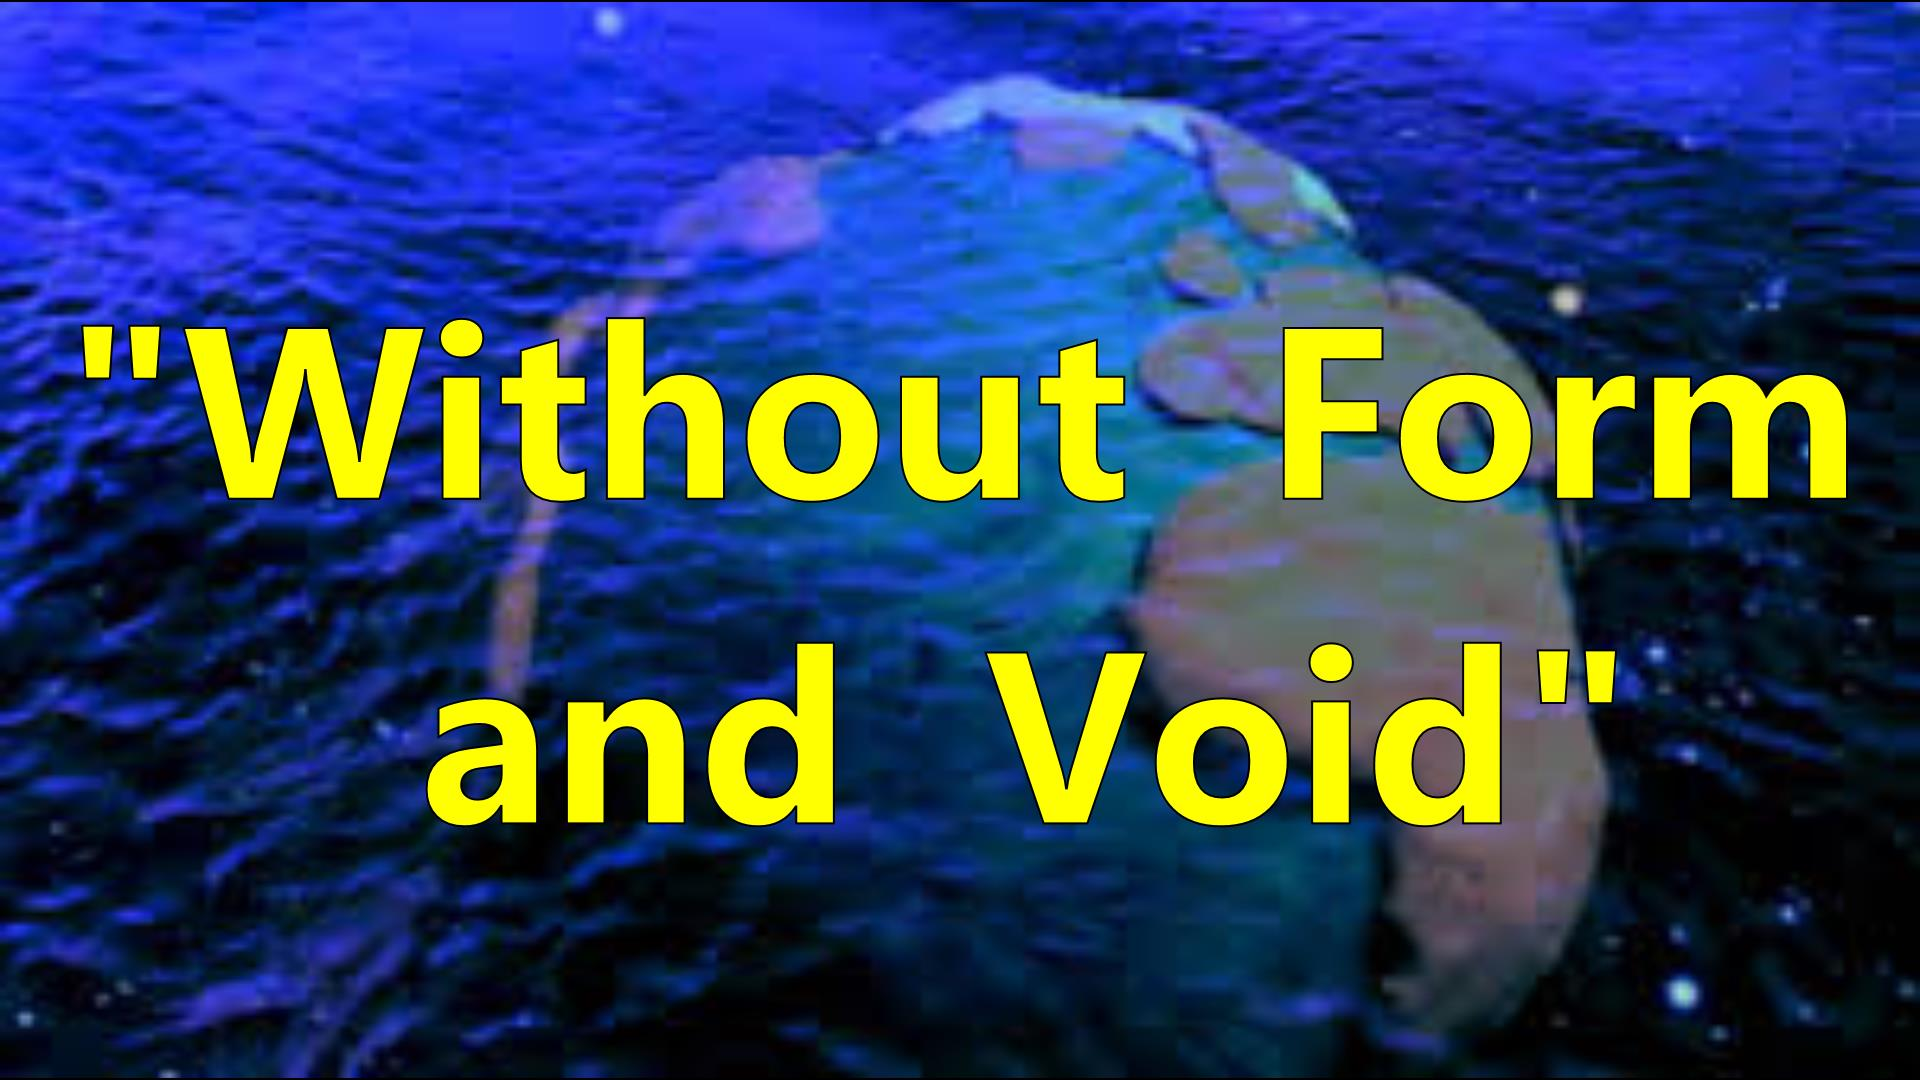 WITHOUT FORM and VOID